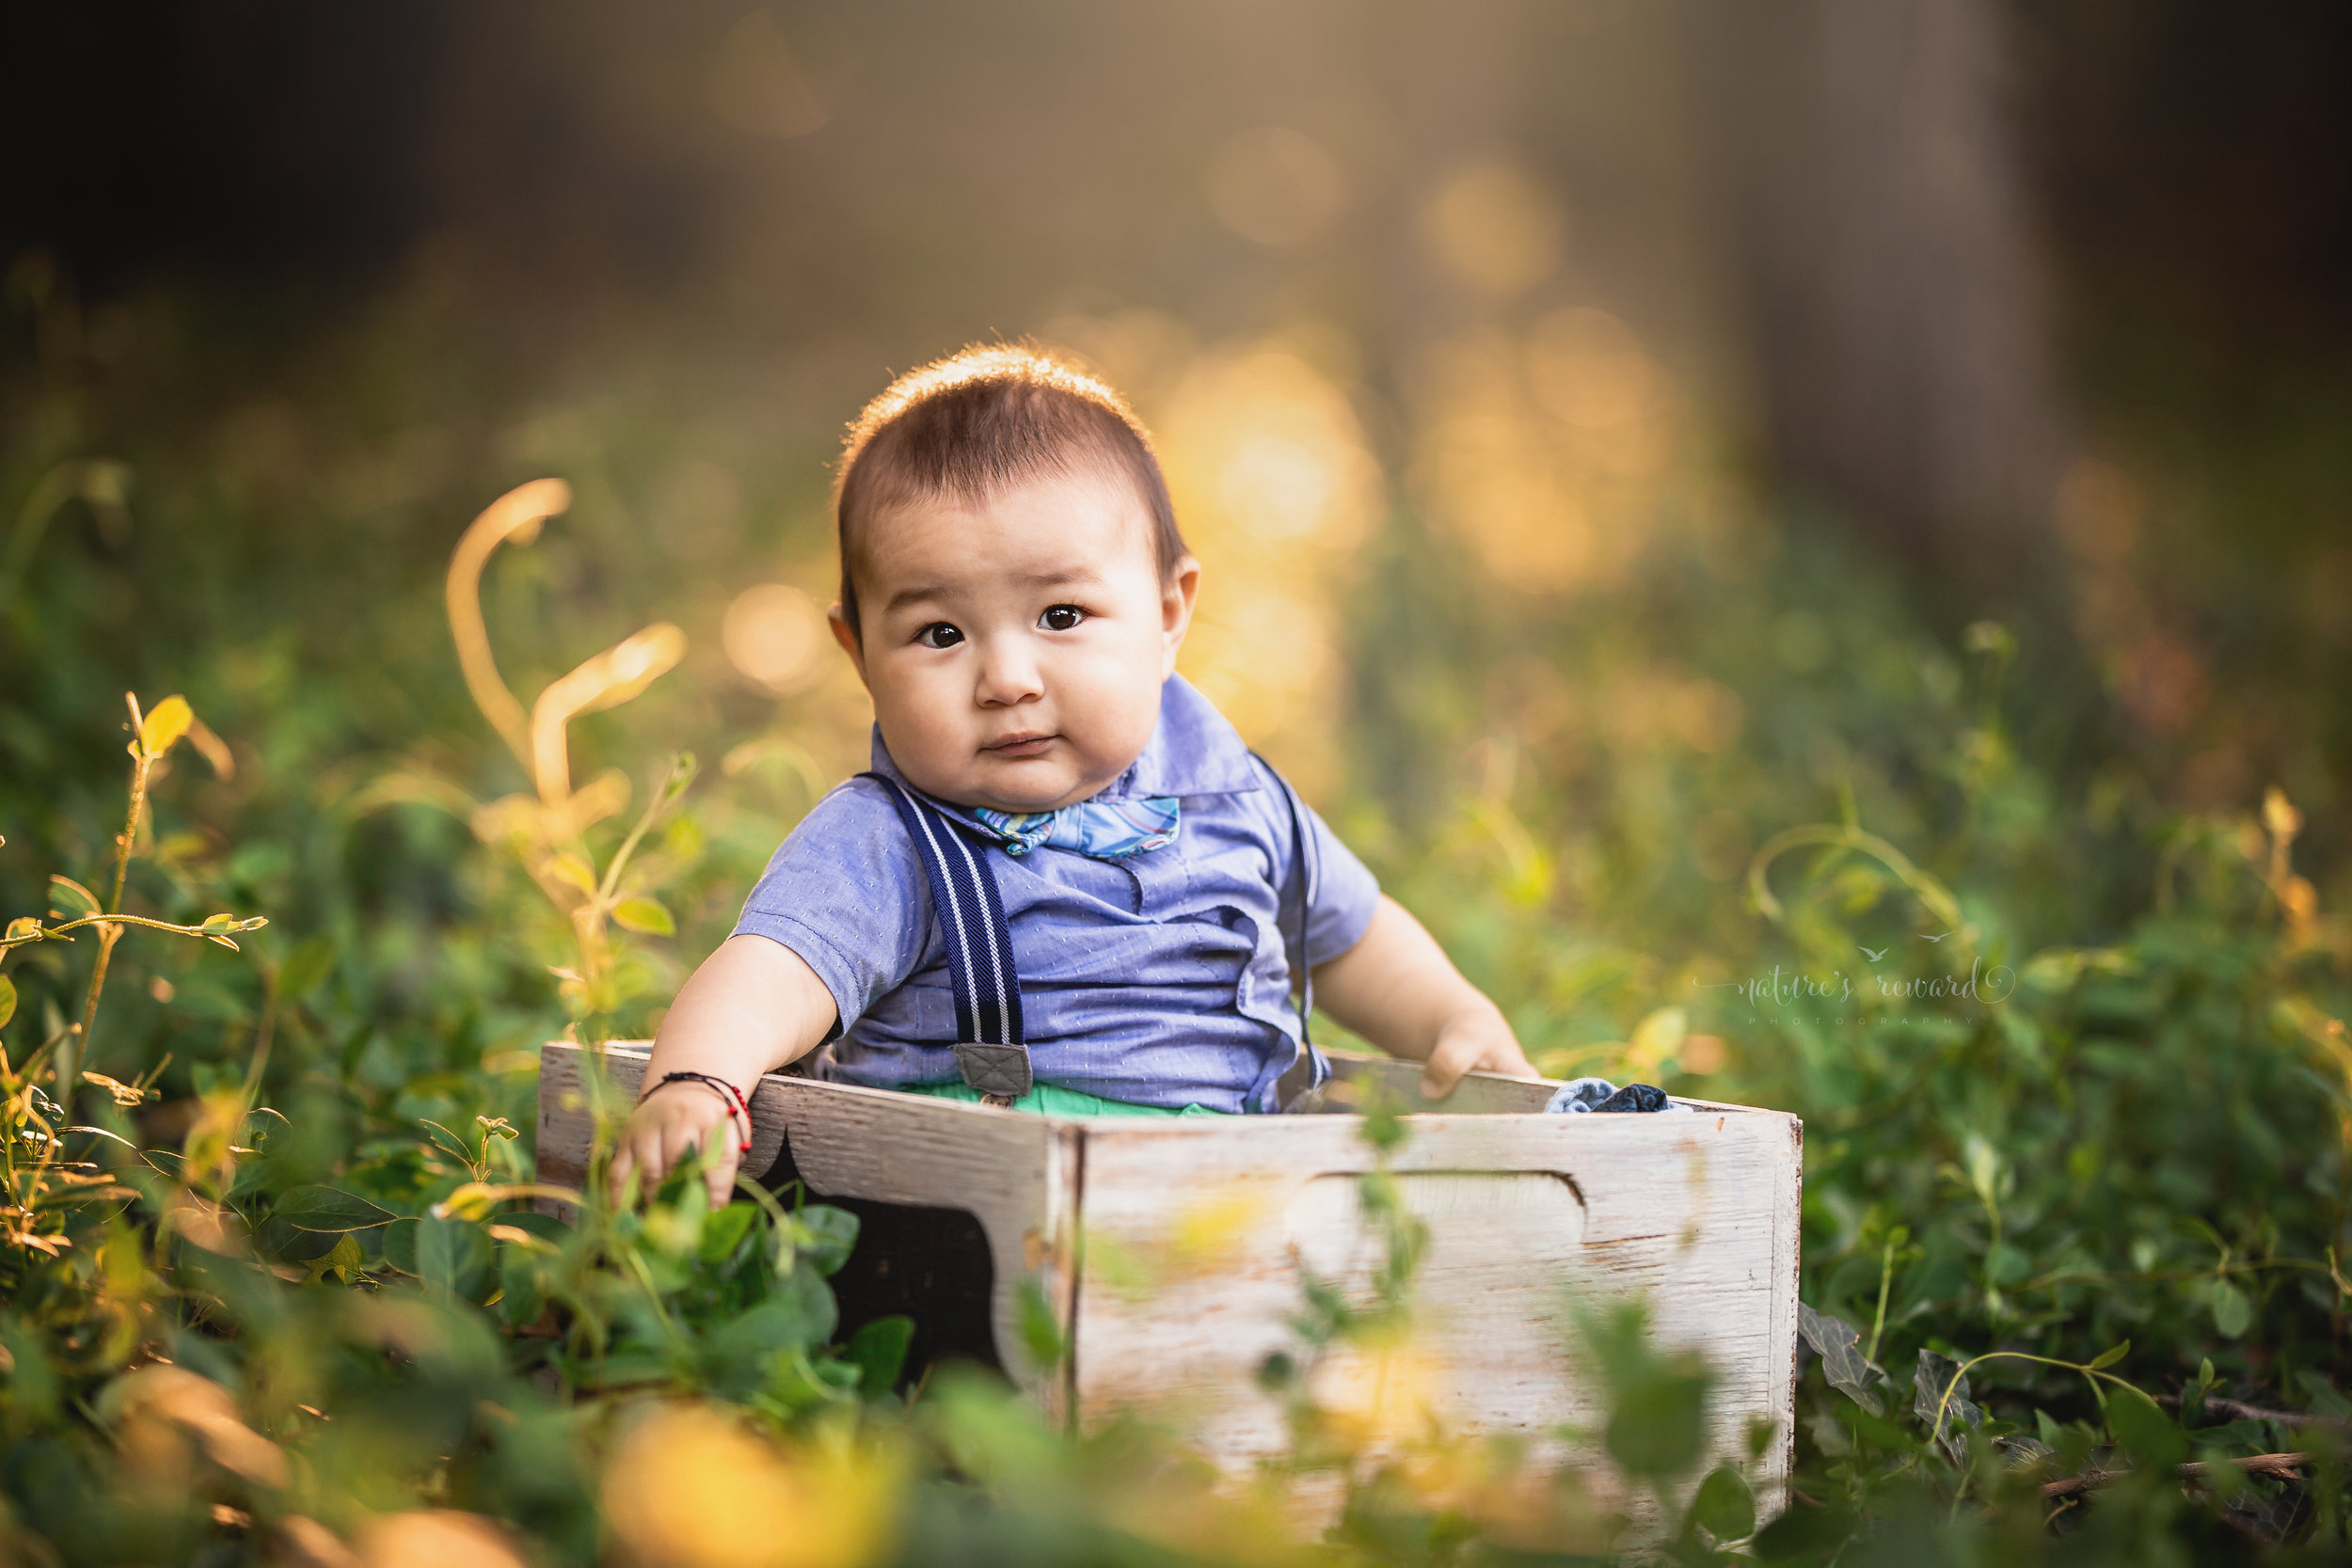 Beautiful baby boy 6 months old,in this lovely portrait by Nature's Reward Photography